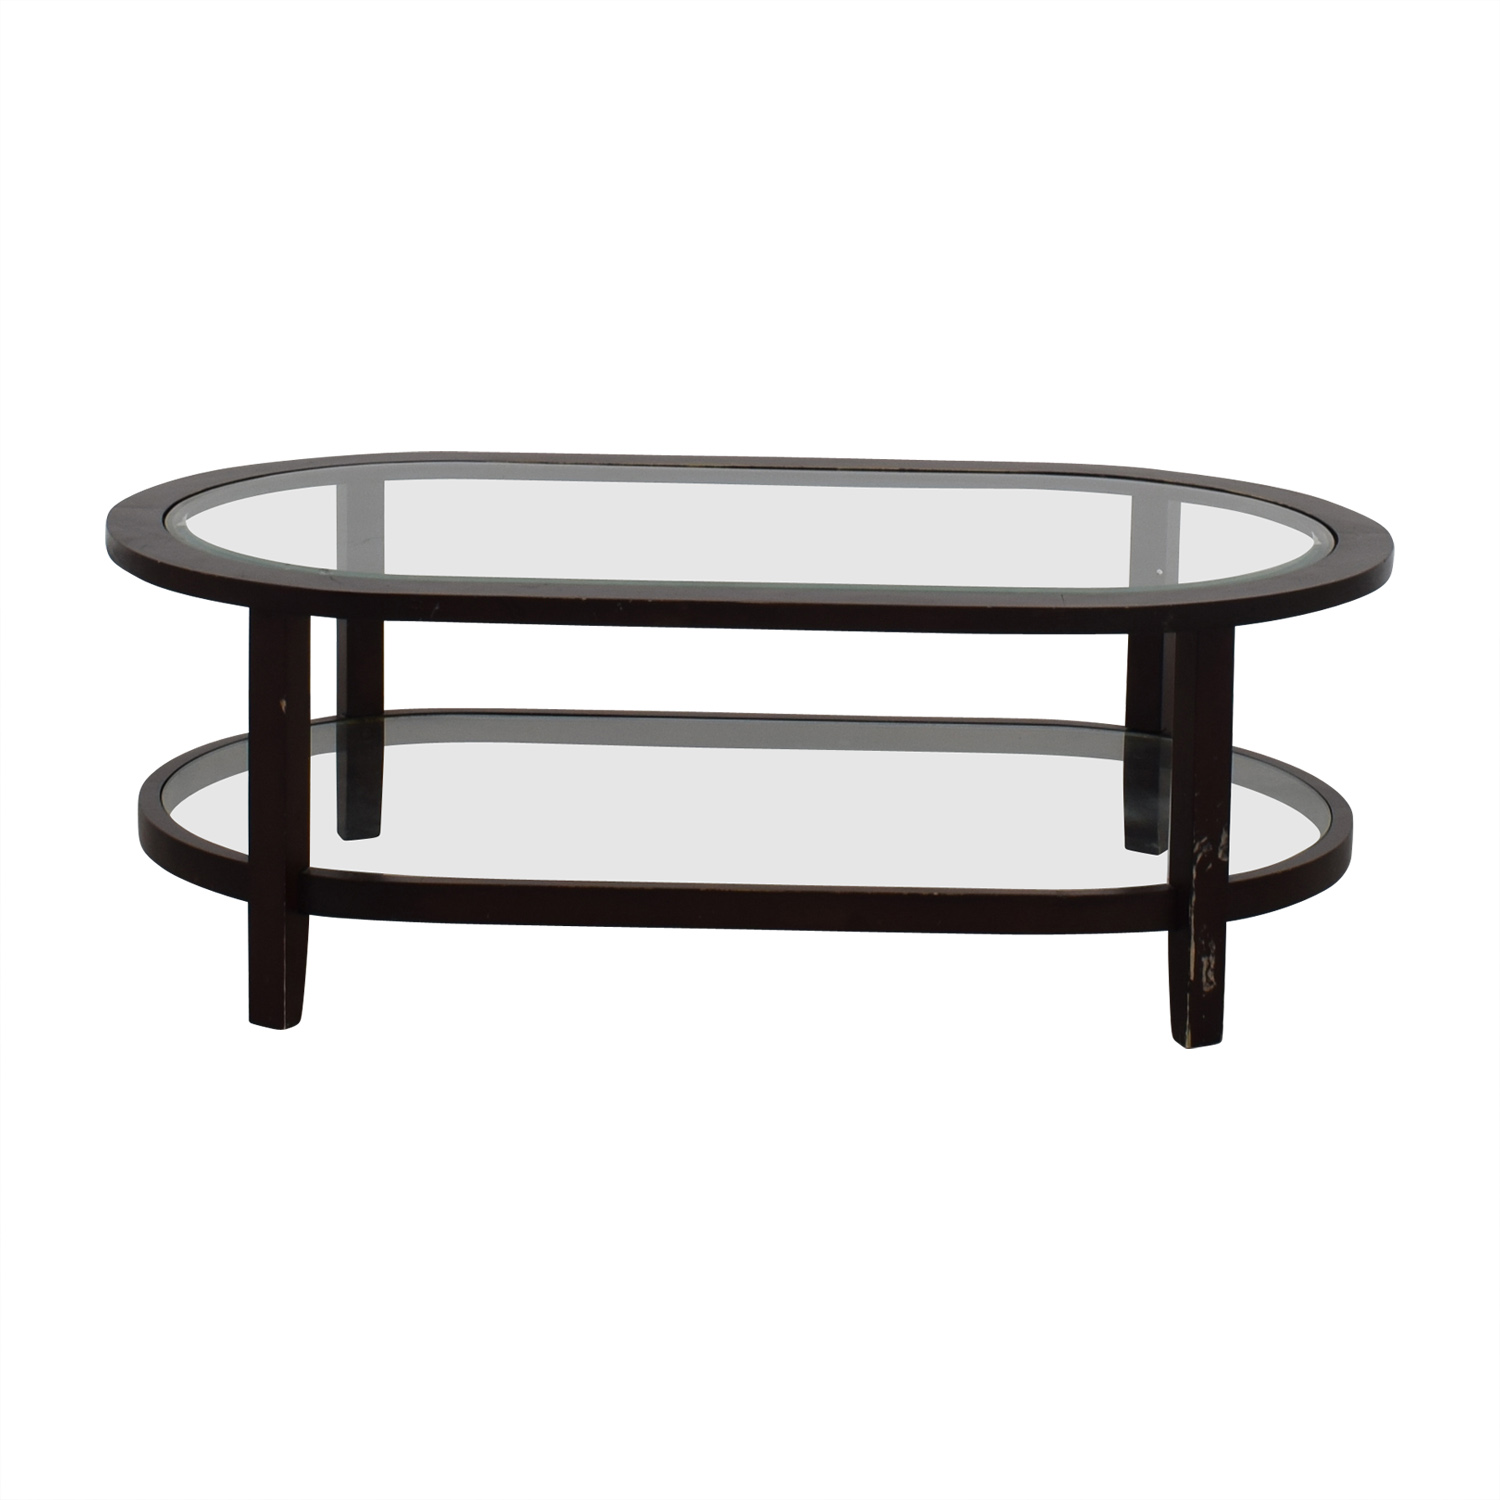 72 off crate barrel crate barrel oval glass coffee table tables